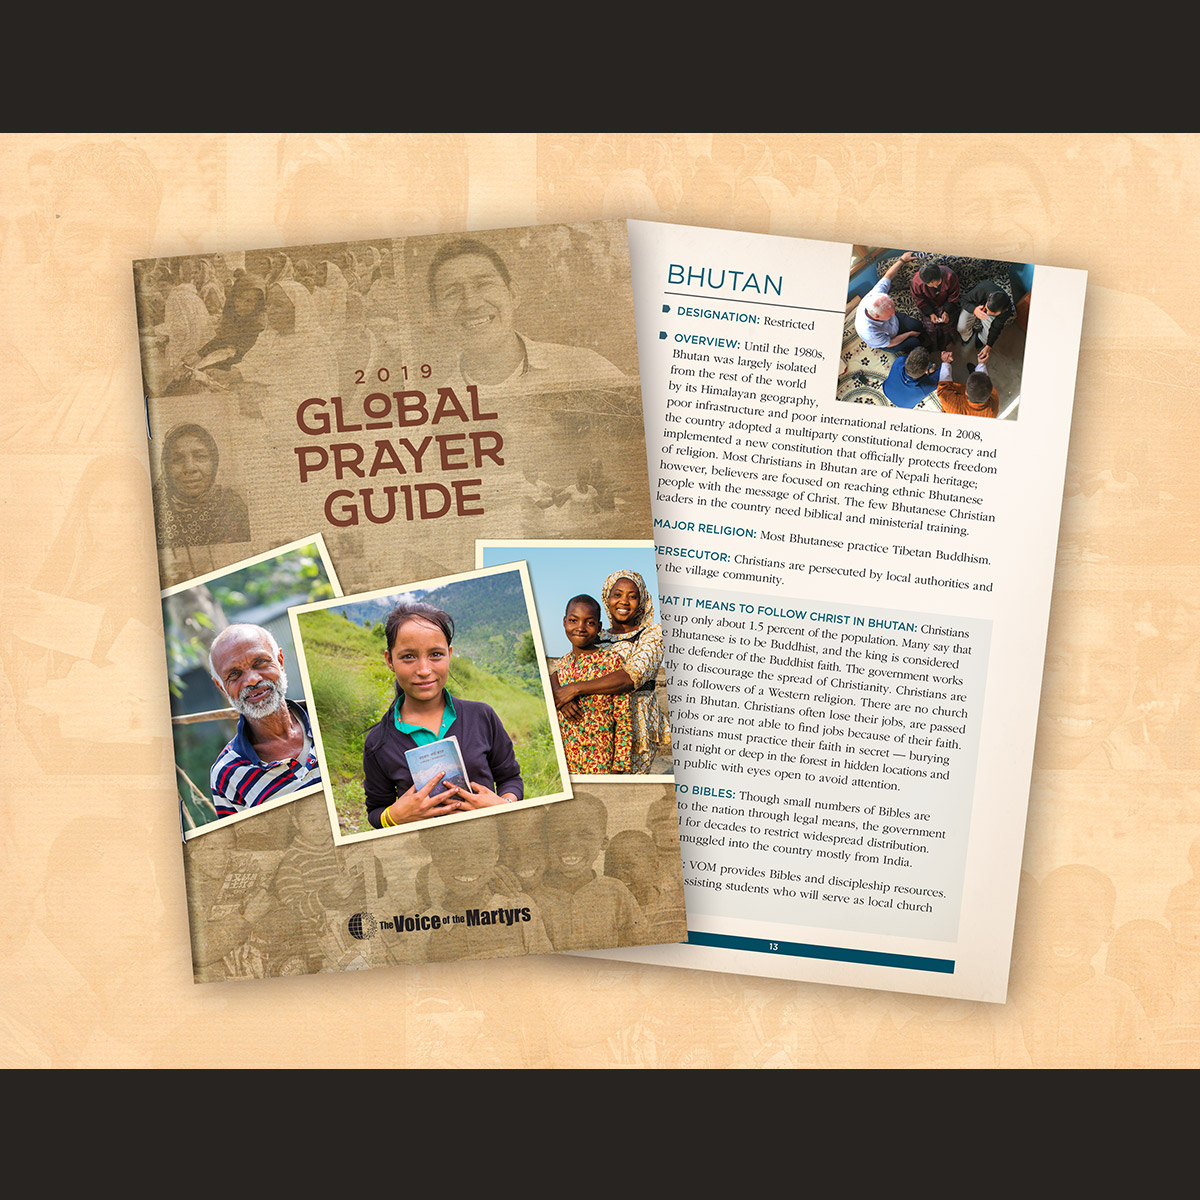 Global Prayer Guide - The Voice of the Martyrs